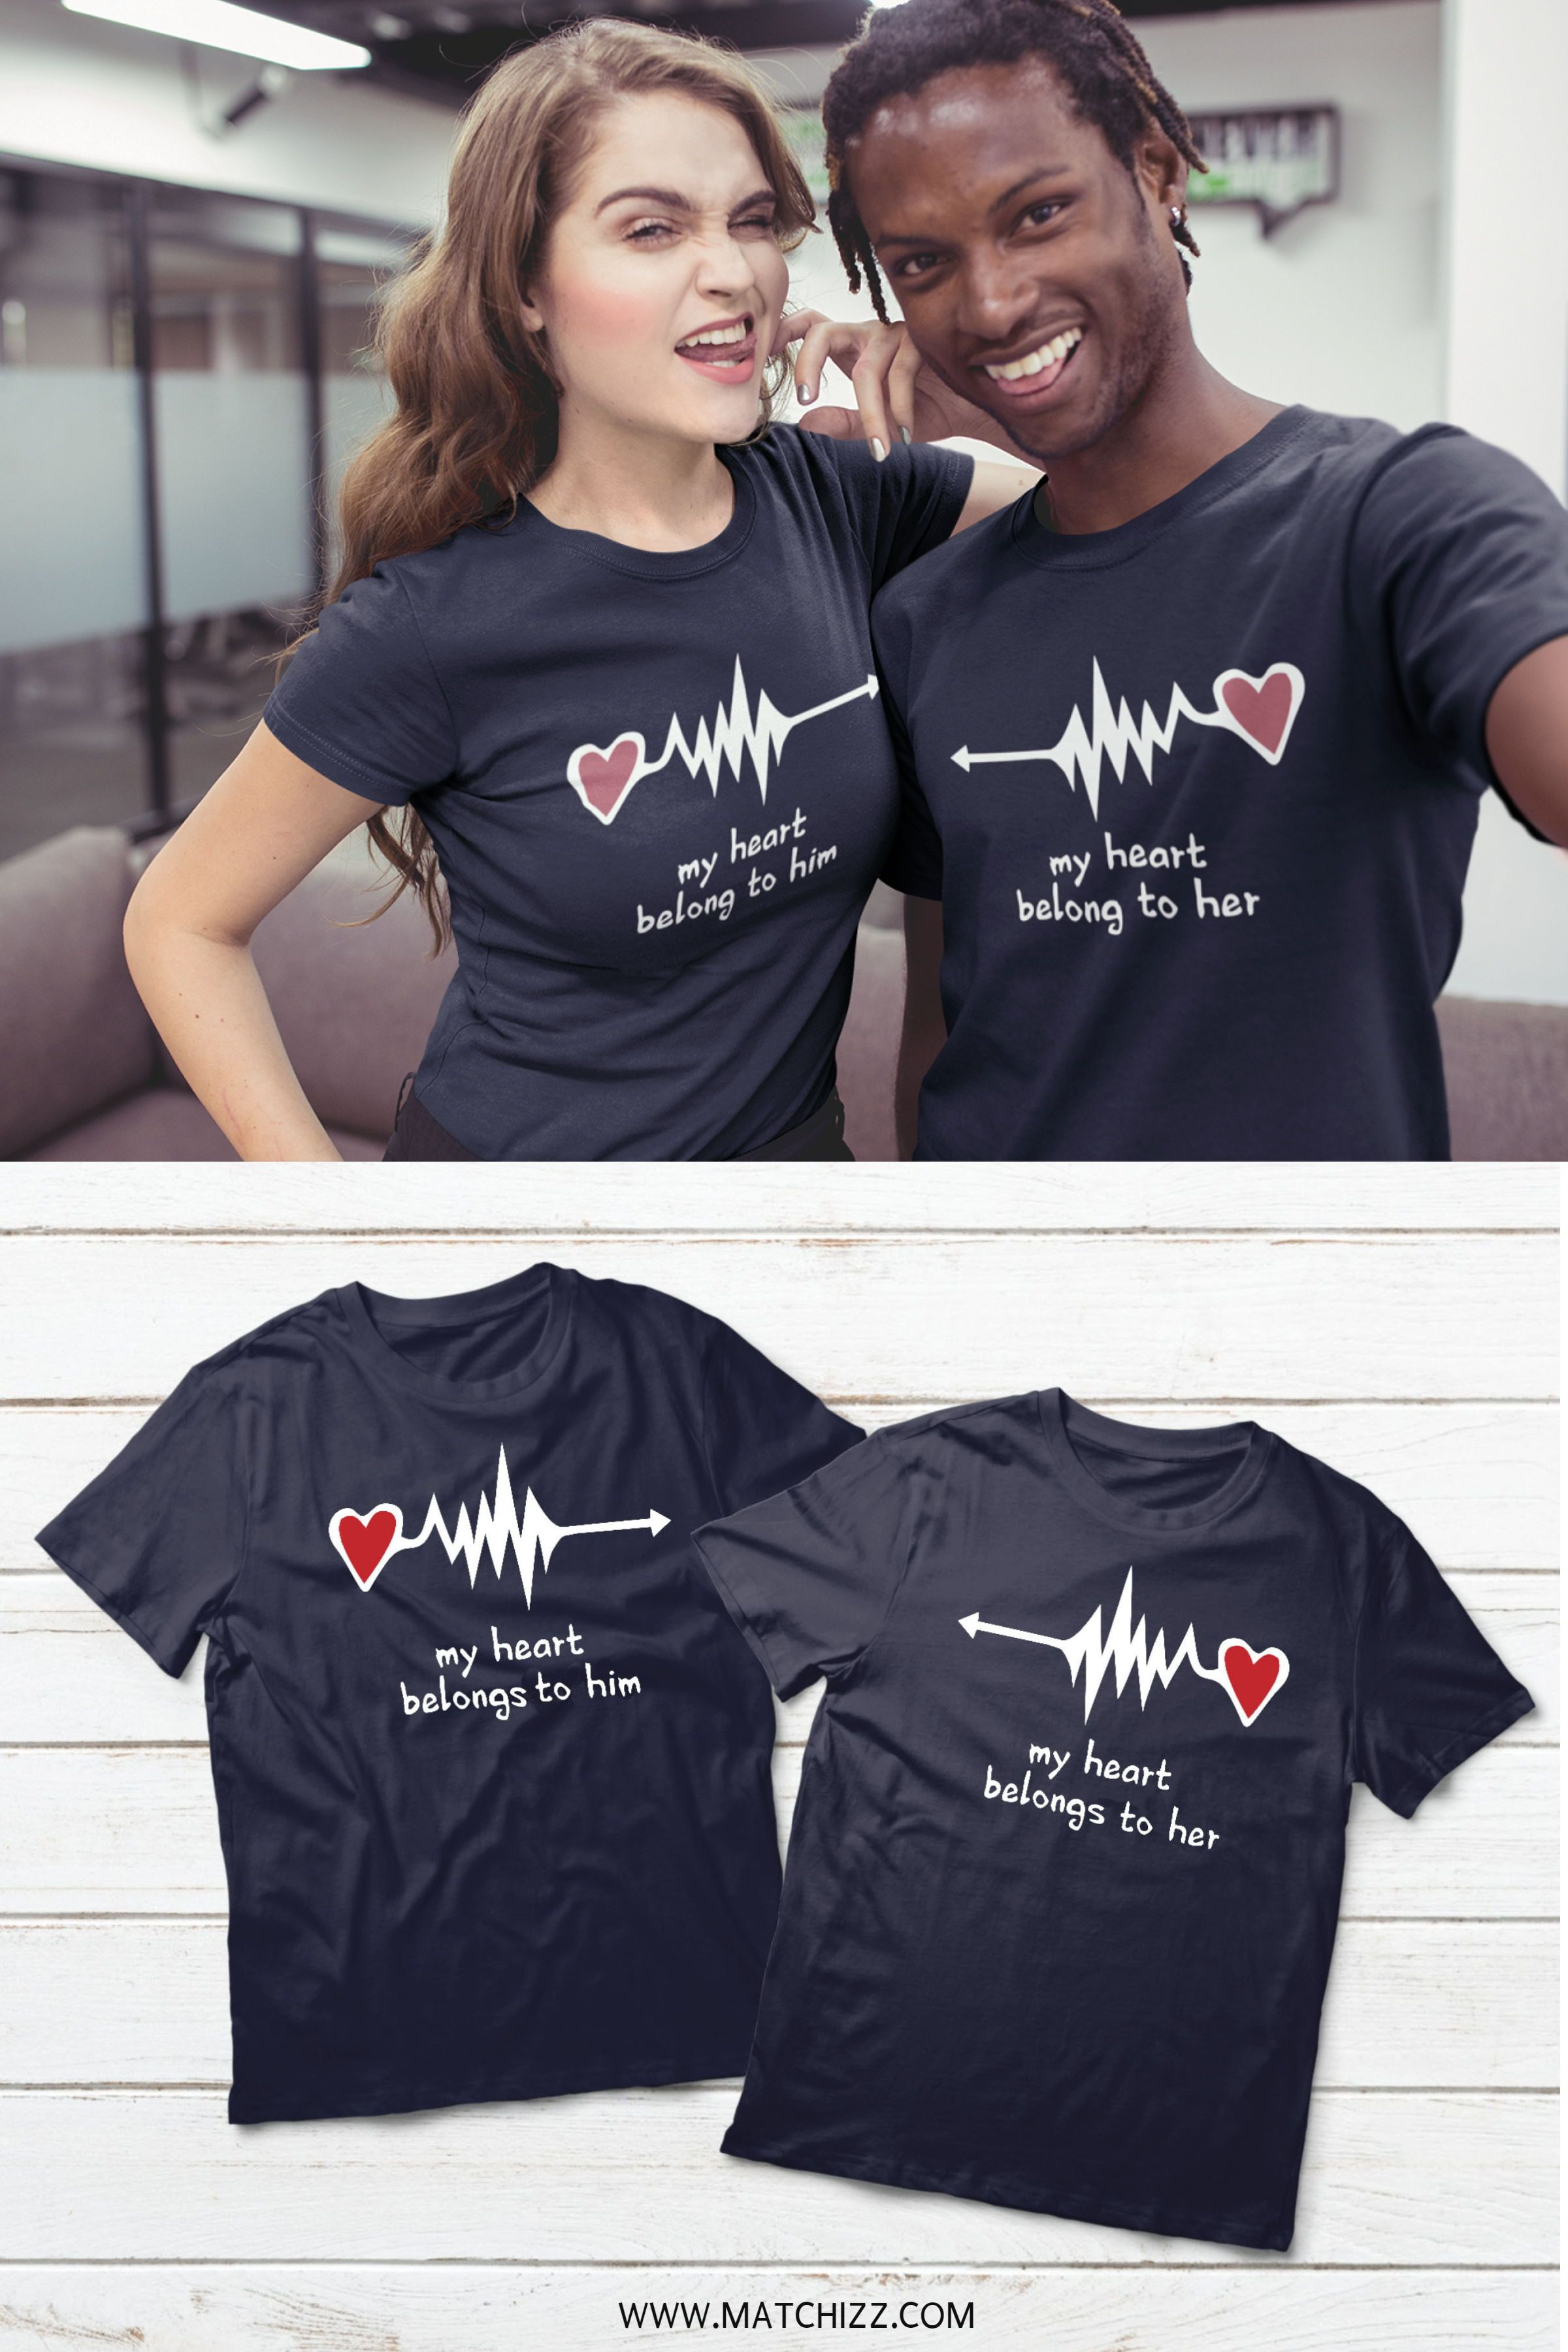 a7c05b84e8d Couples Matching Shirts Love Statement gift for Valentine day  coupleshirts   coupleshirtsmatching  couplematchingoutfits  coupleoutfits  couplesshirts  ...